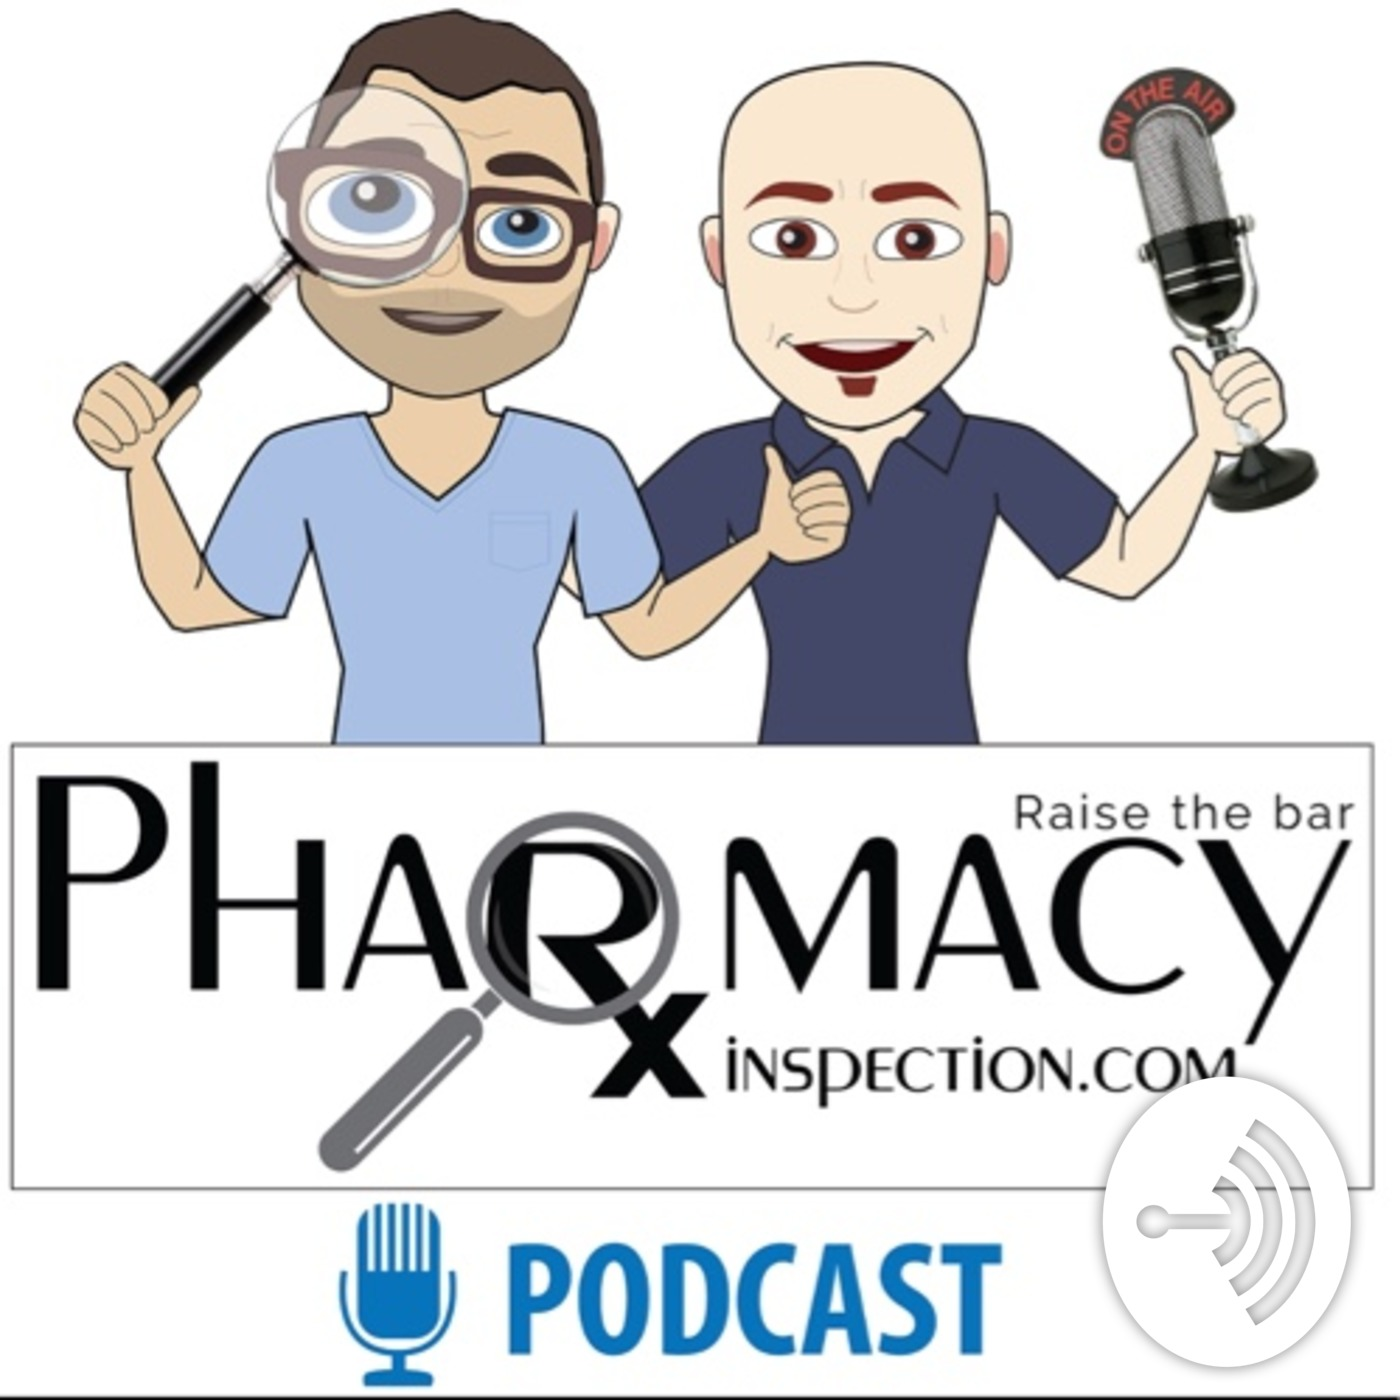 Pharmacy Inspection Podcast Episode 22 - 795 Revisions